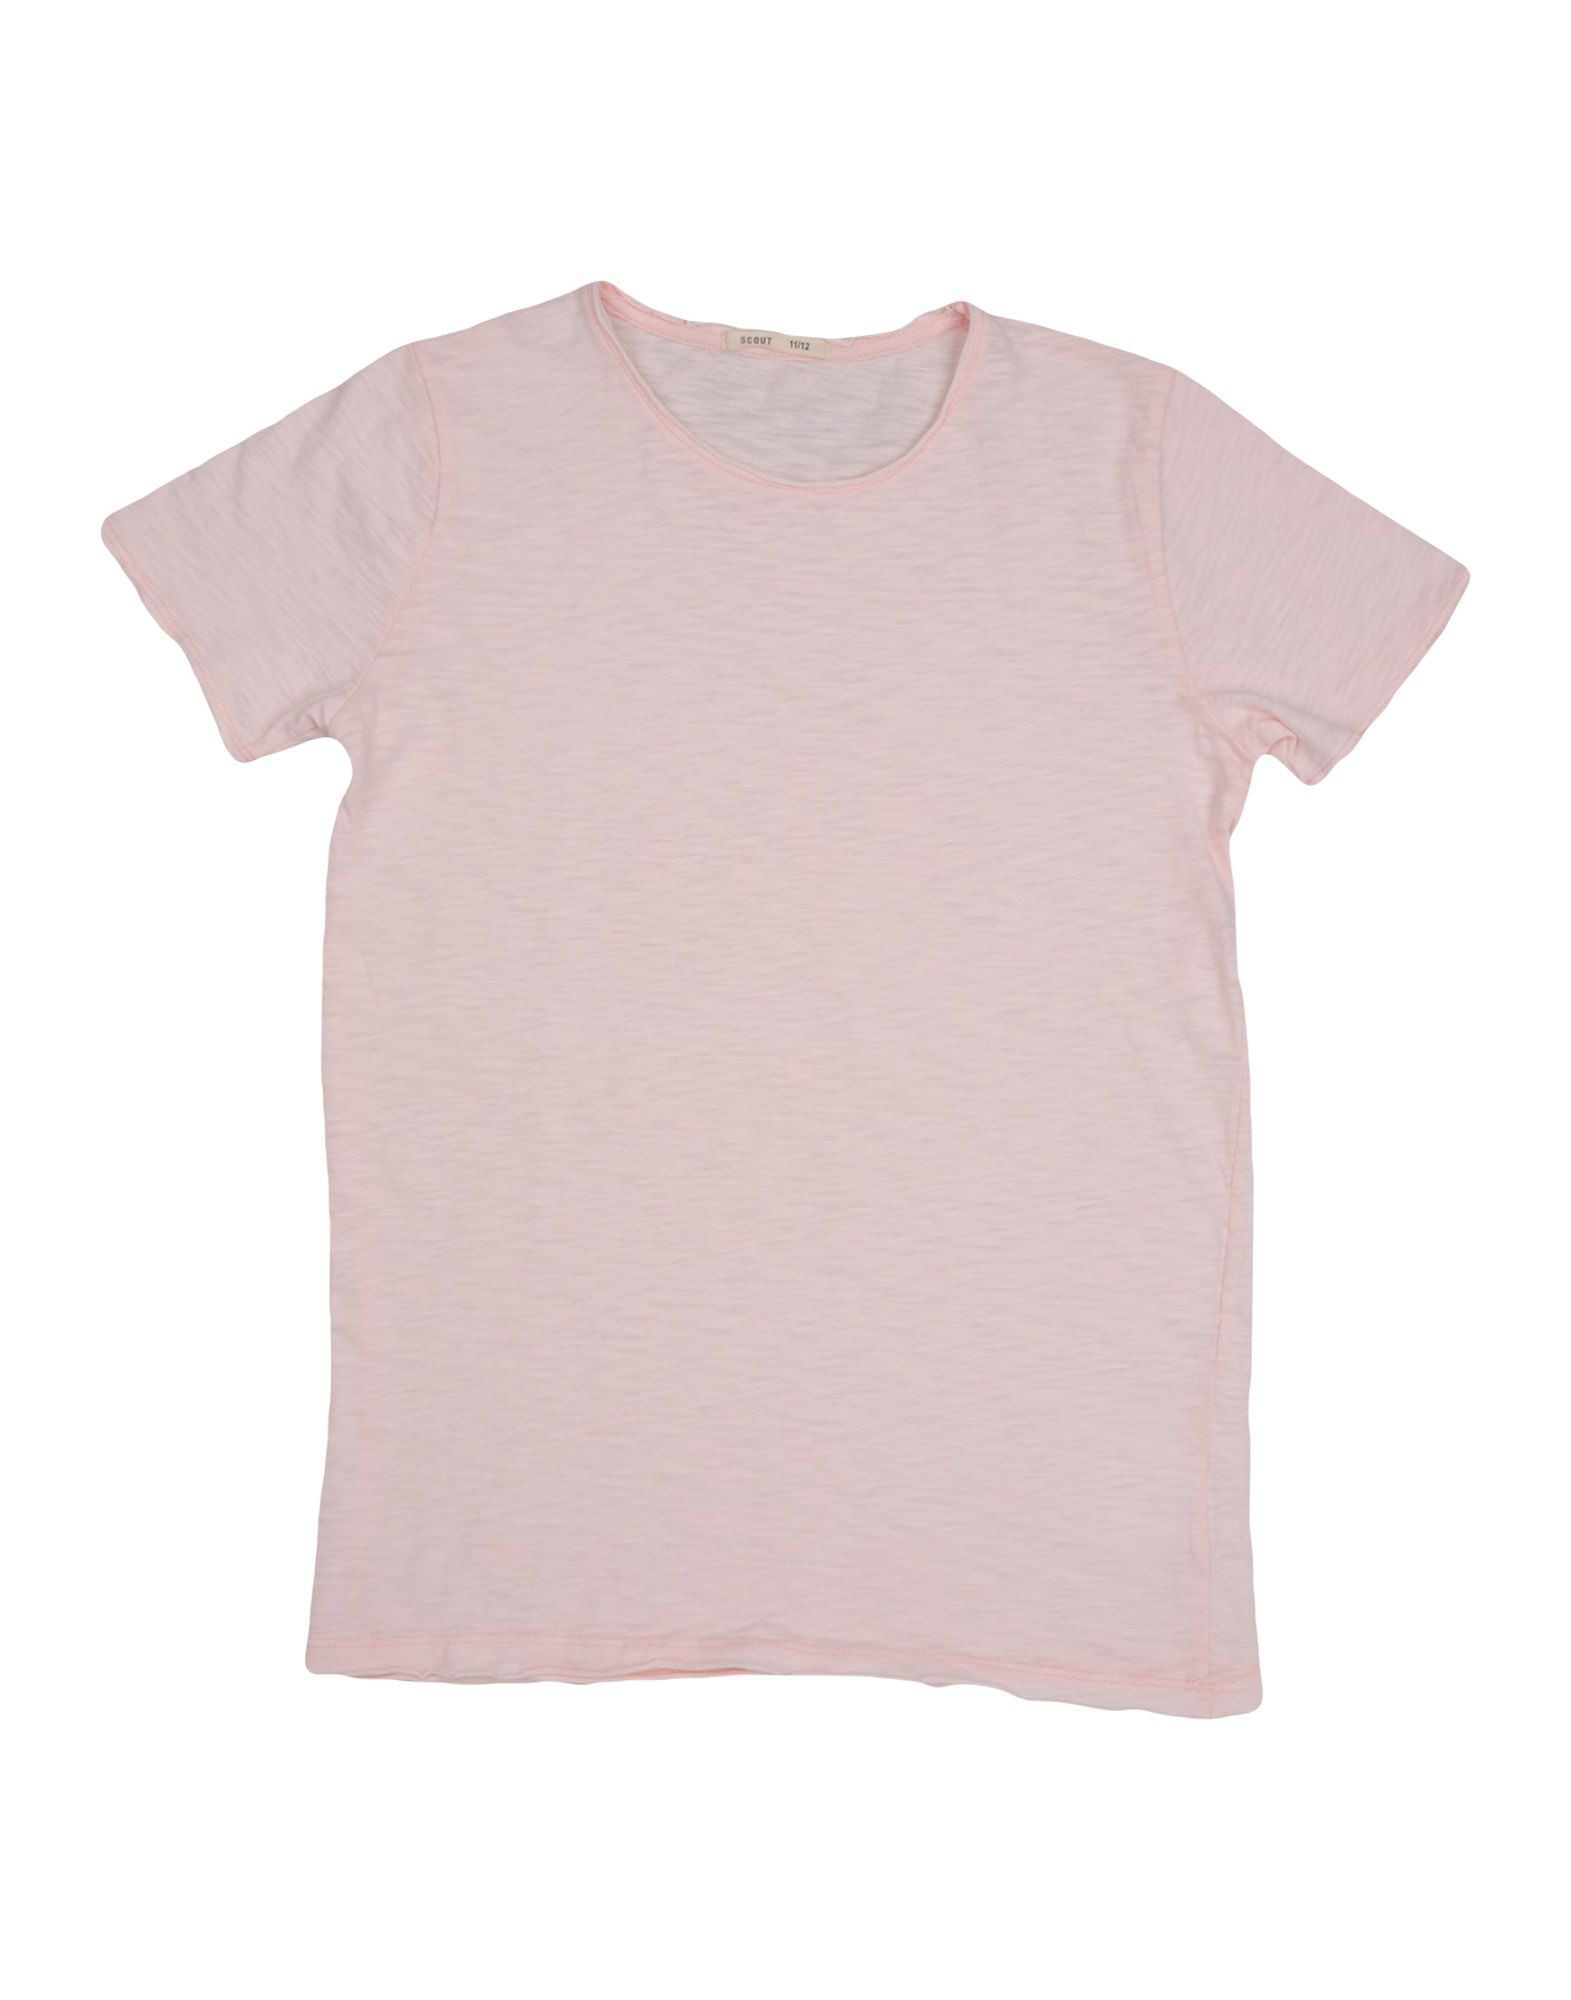 Scout Kids' T-shirts In Pink